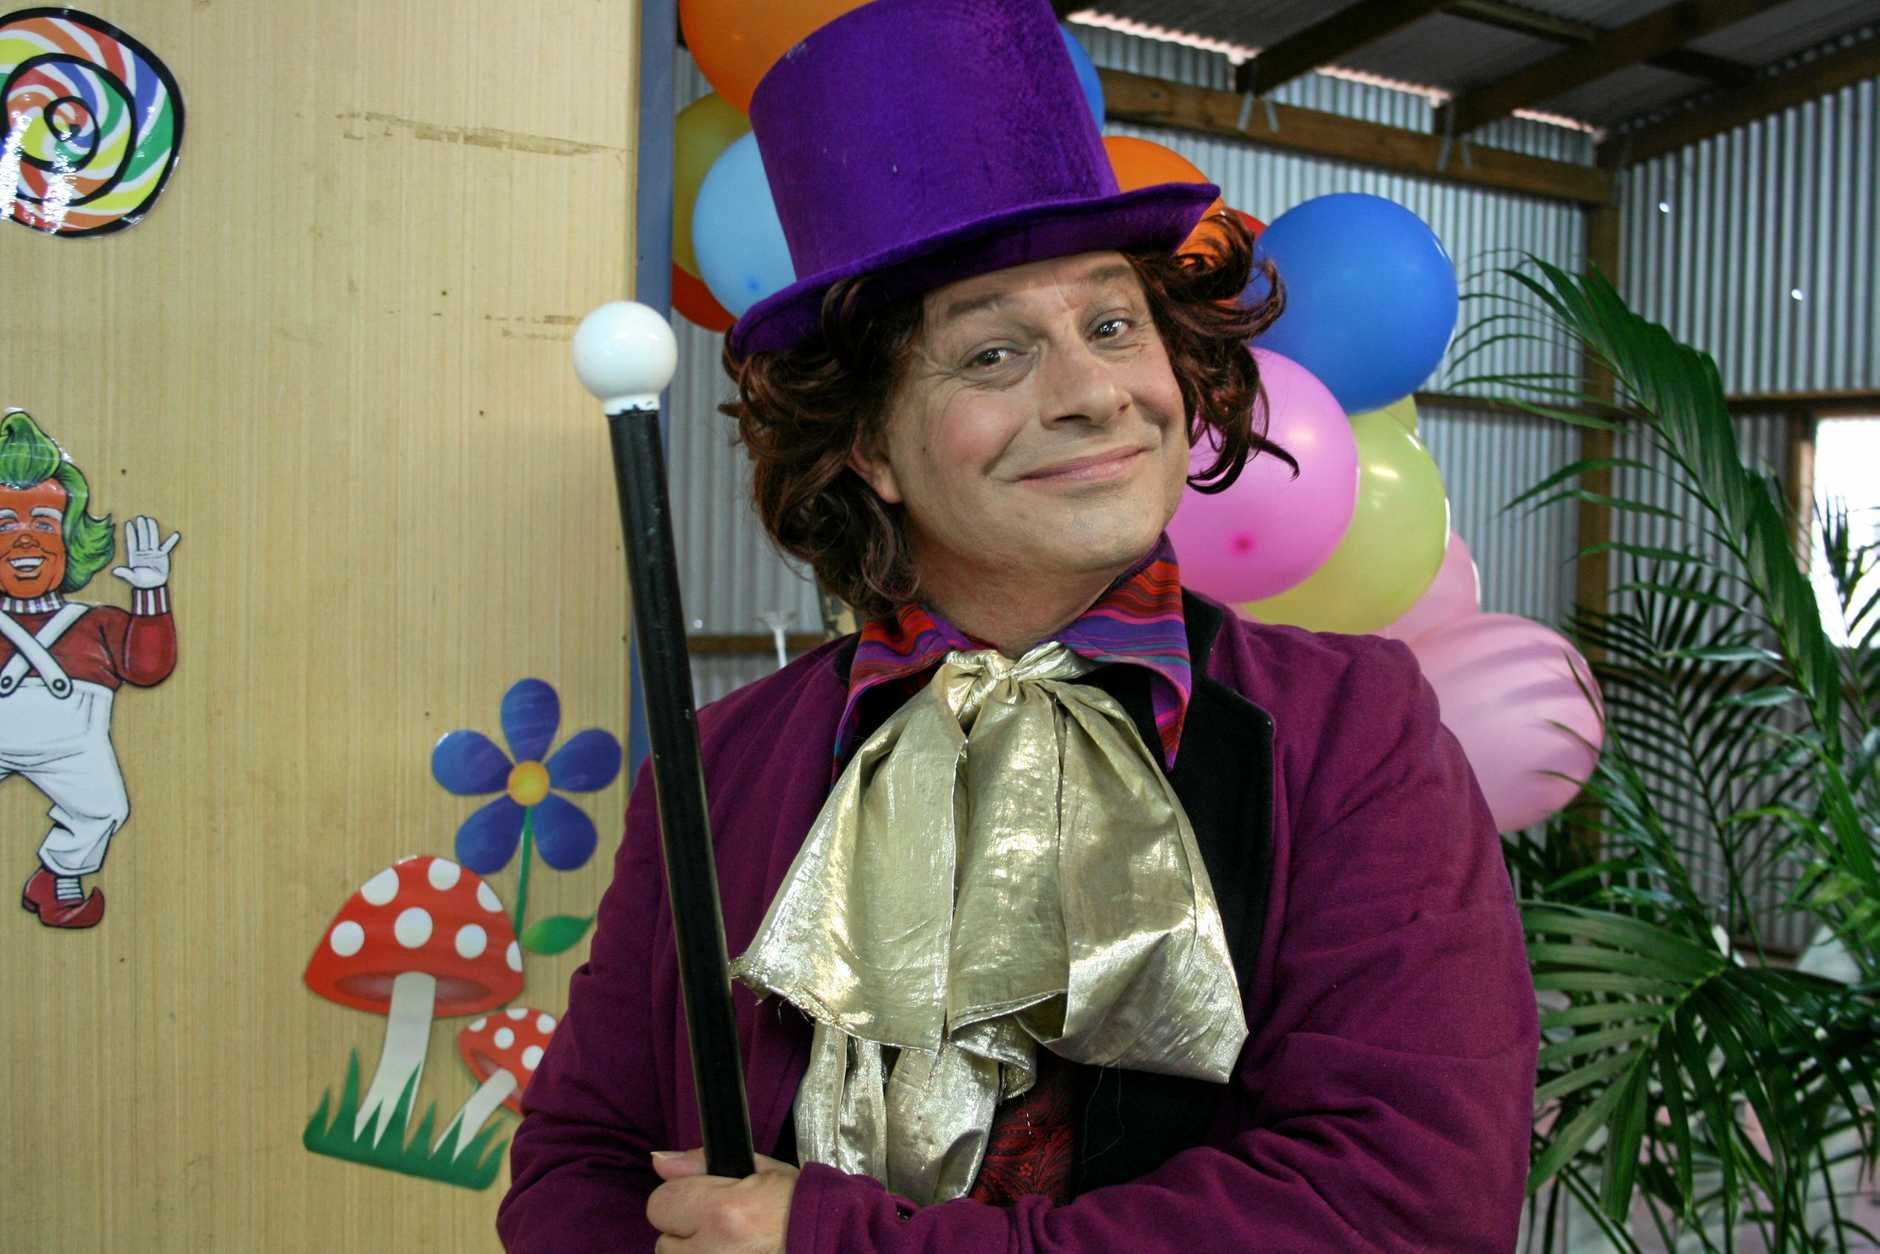 Willy Wonker will be leading the Easter holiday festivities at the The Ginger Factory in Yandina.